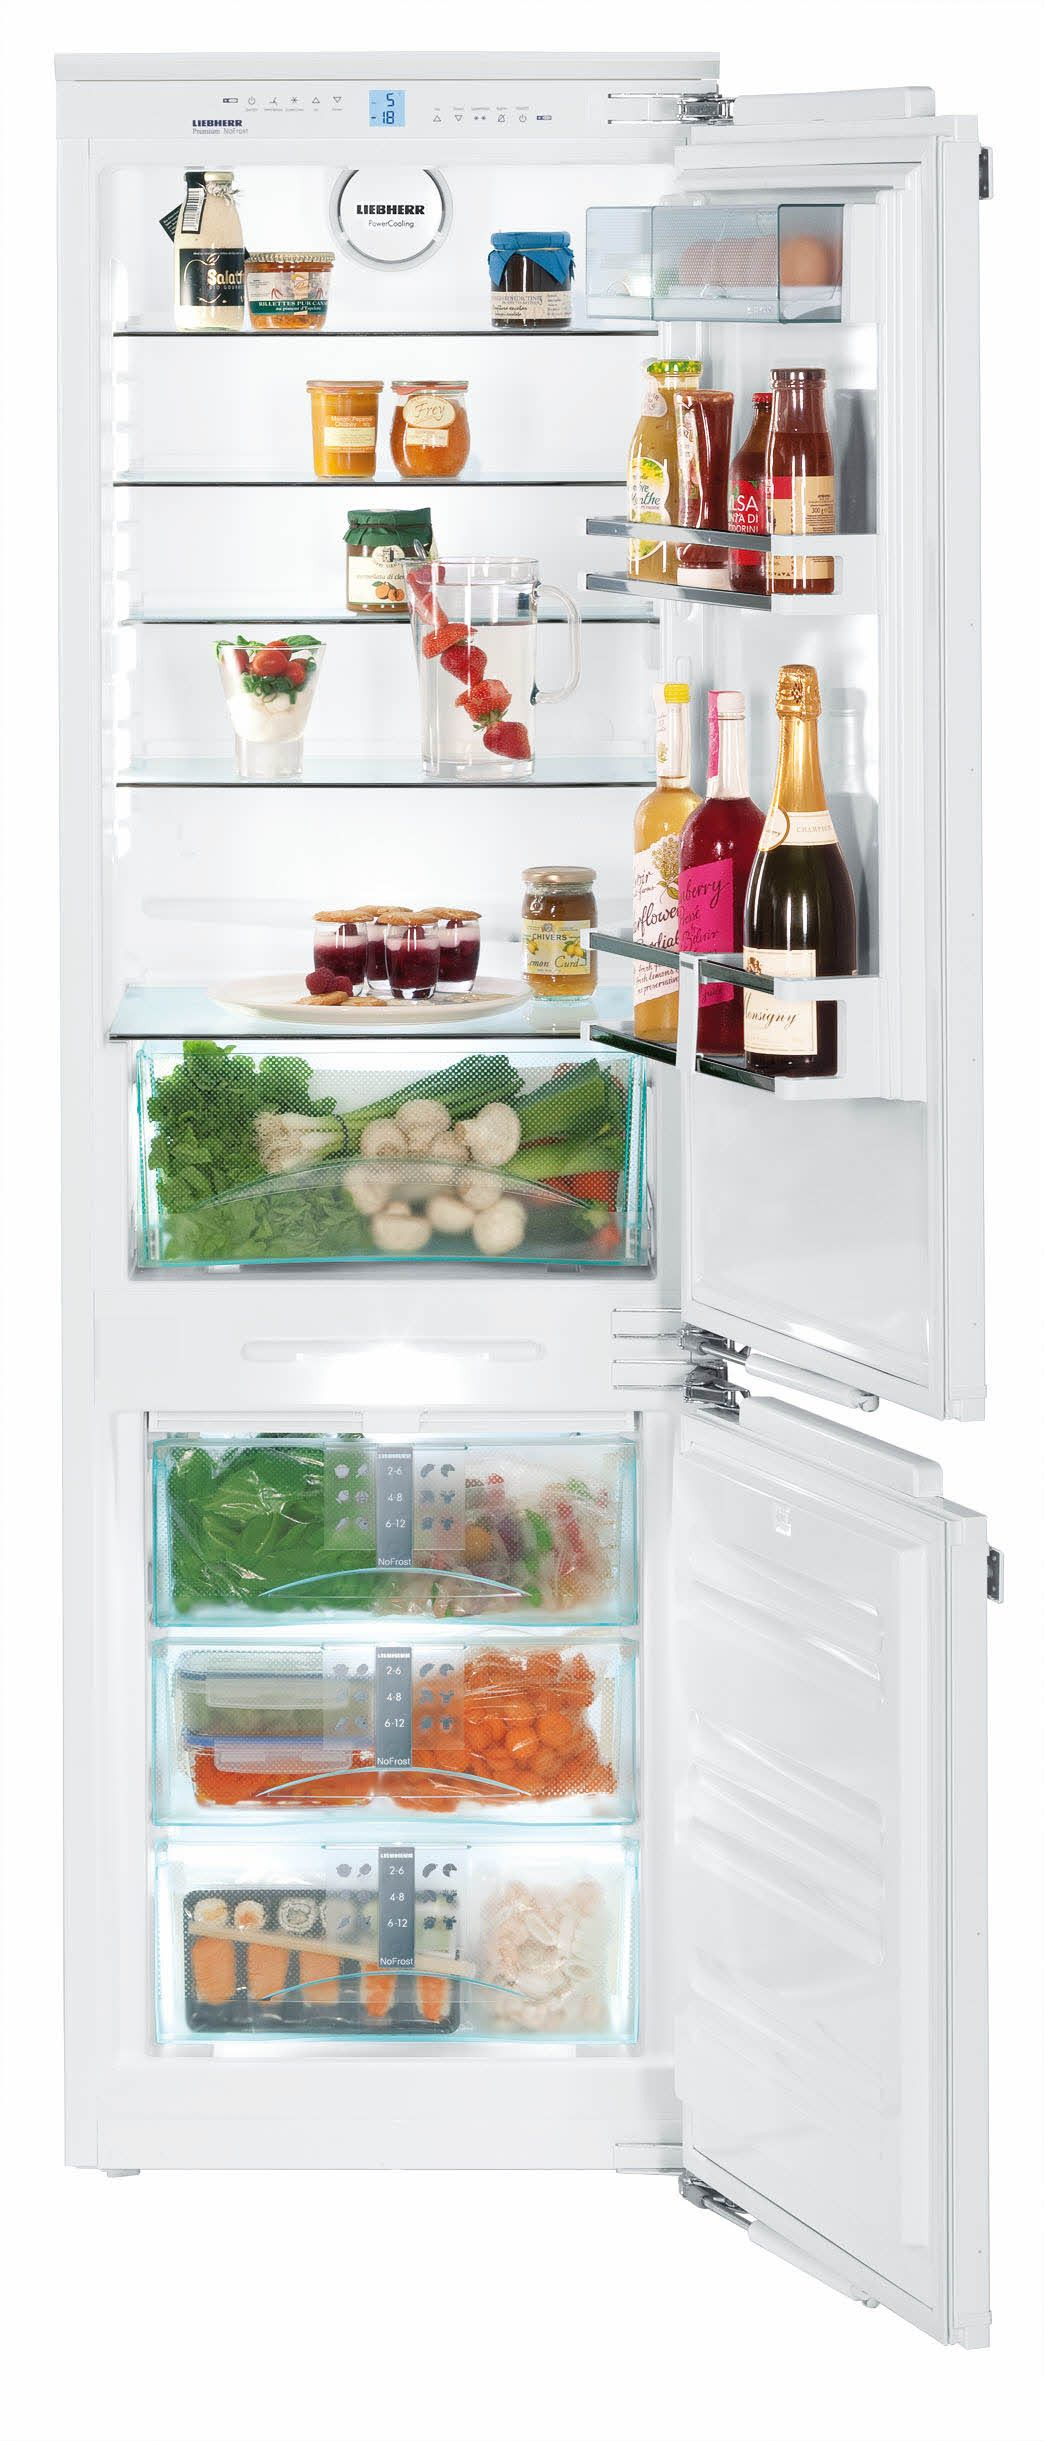 Liebherr Hc1021 24 Built In Panel Ready Bottom Freezer Refrigerator With 4 Glass Shelves Adjustable Built In Fridge Freezer Refrigerator Panels Glass Shelves